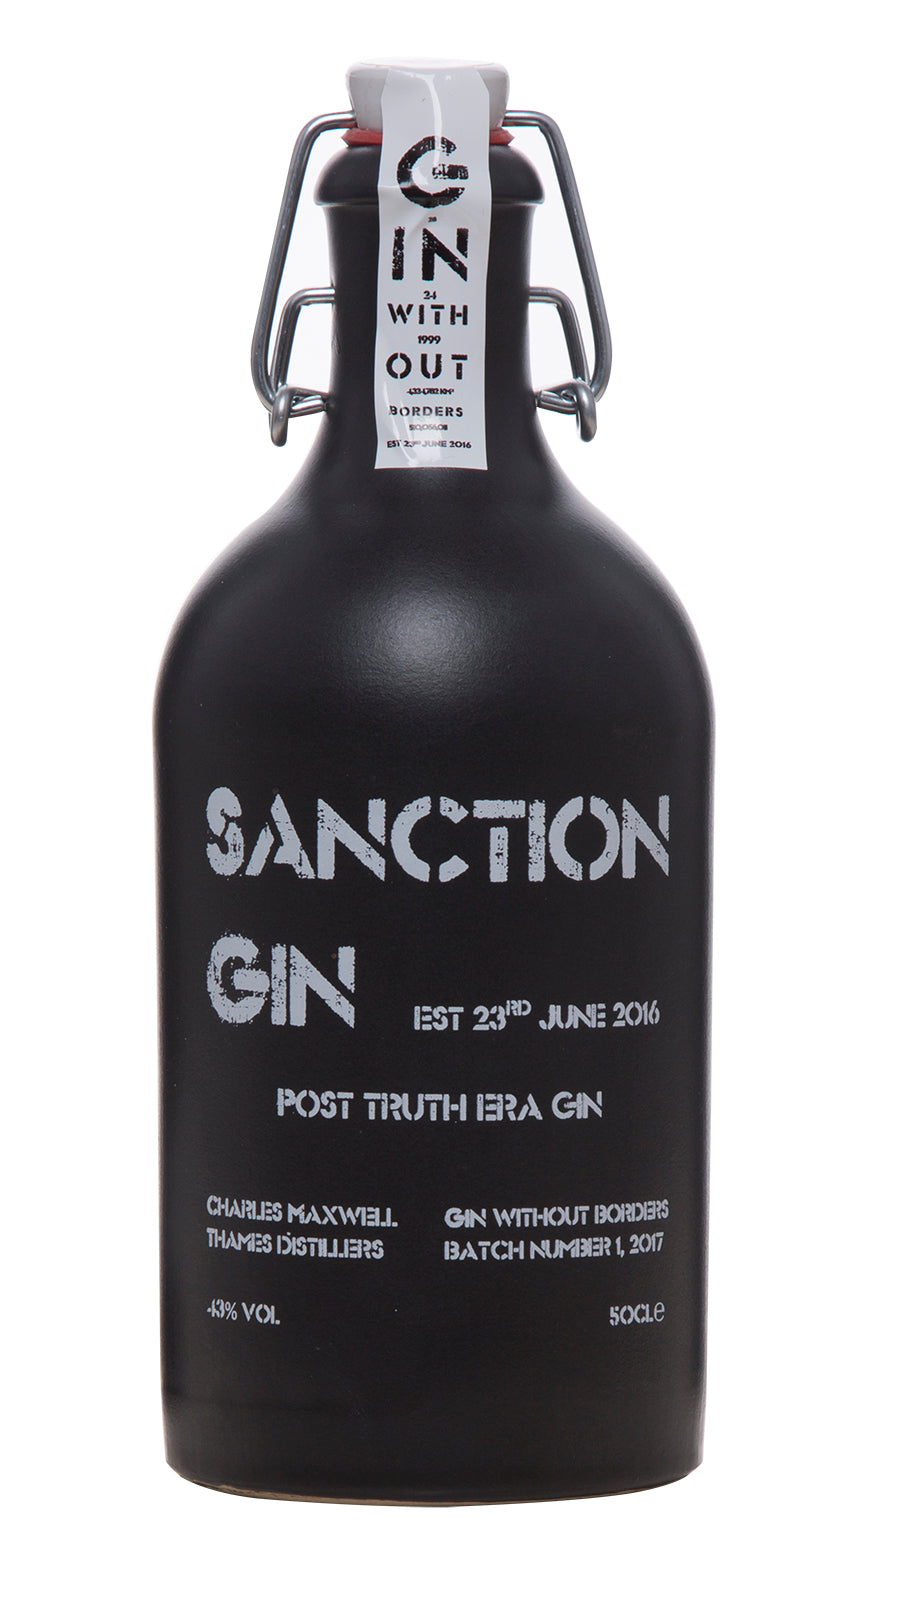 Sanction Gin London Dry Gin Limted Edition Ceramic Bottle 50 cl 43% ABV